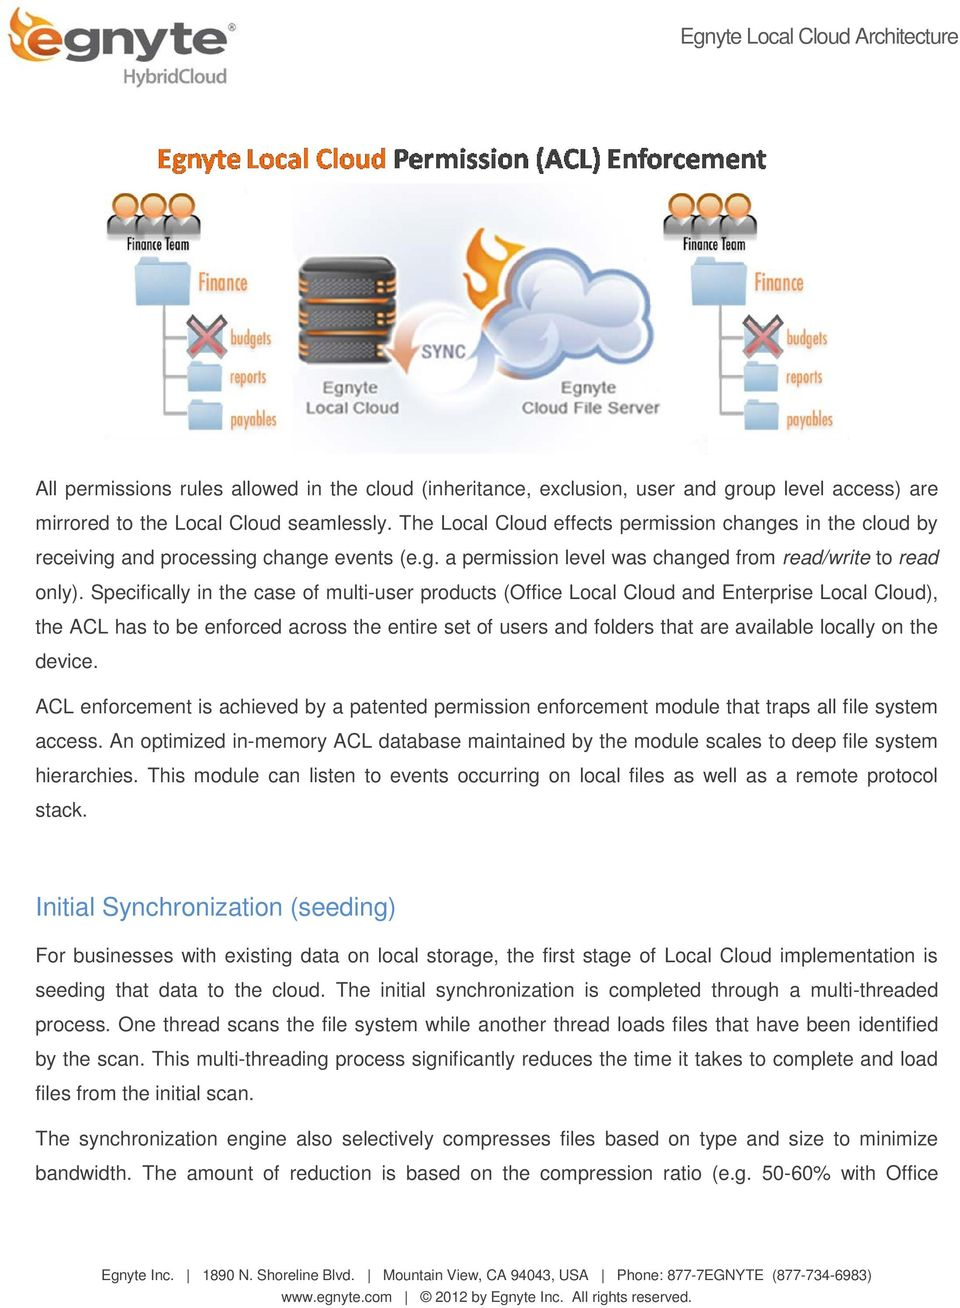 Specifically in the case of multi-user products (Office Local Cloud and Enterprise Local Cloud), the ACL has to be enforced across the entire set of users and folders that are available locally on